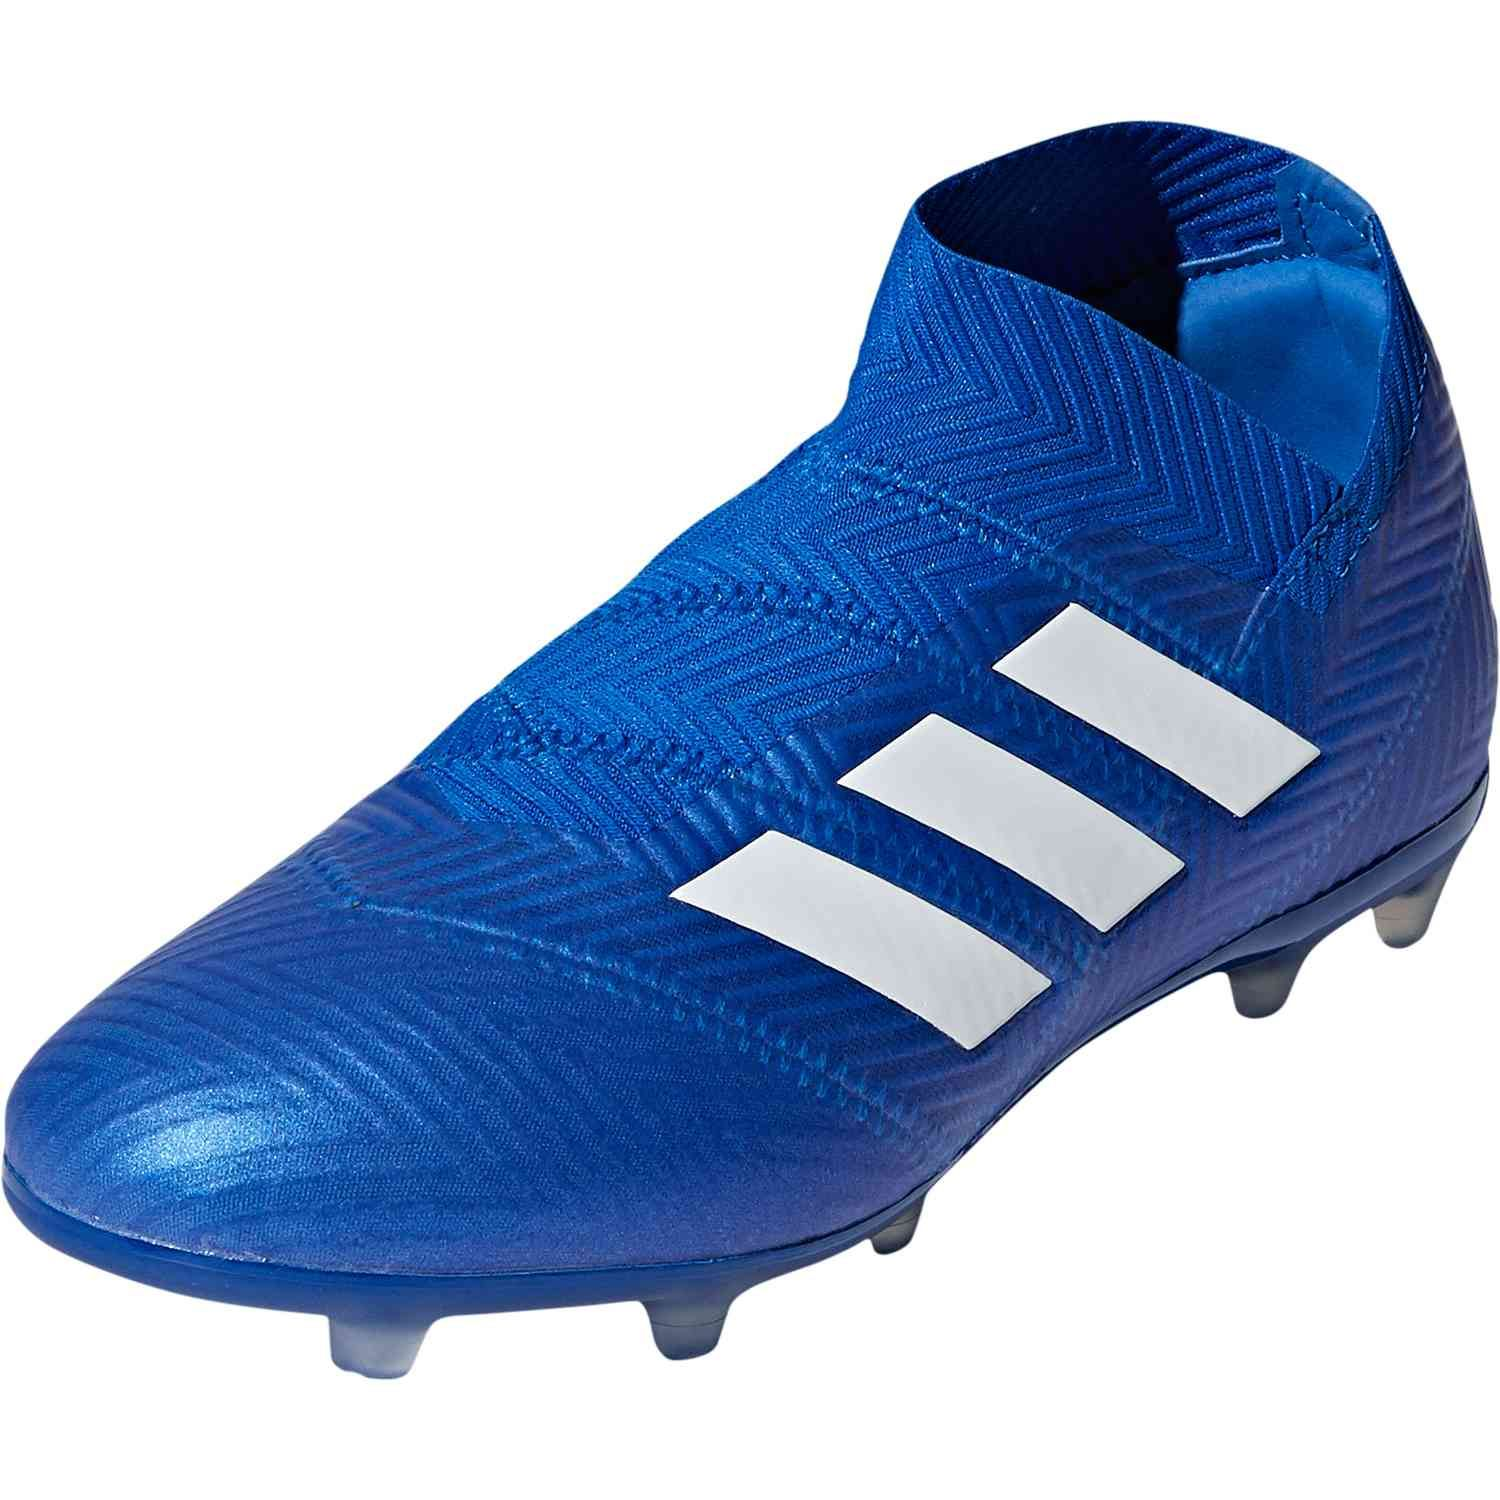 0bb7dc511 Buy these beautiful shoes at www.soccerpro.com